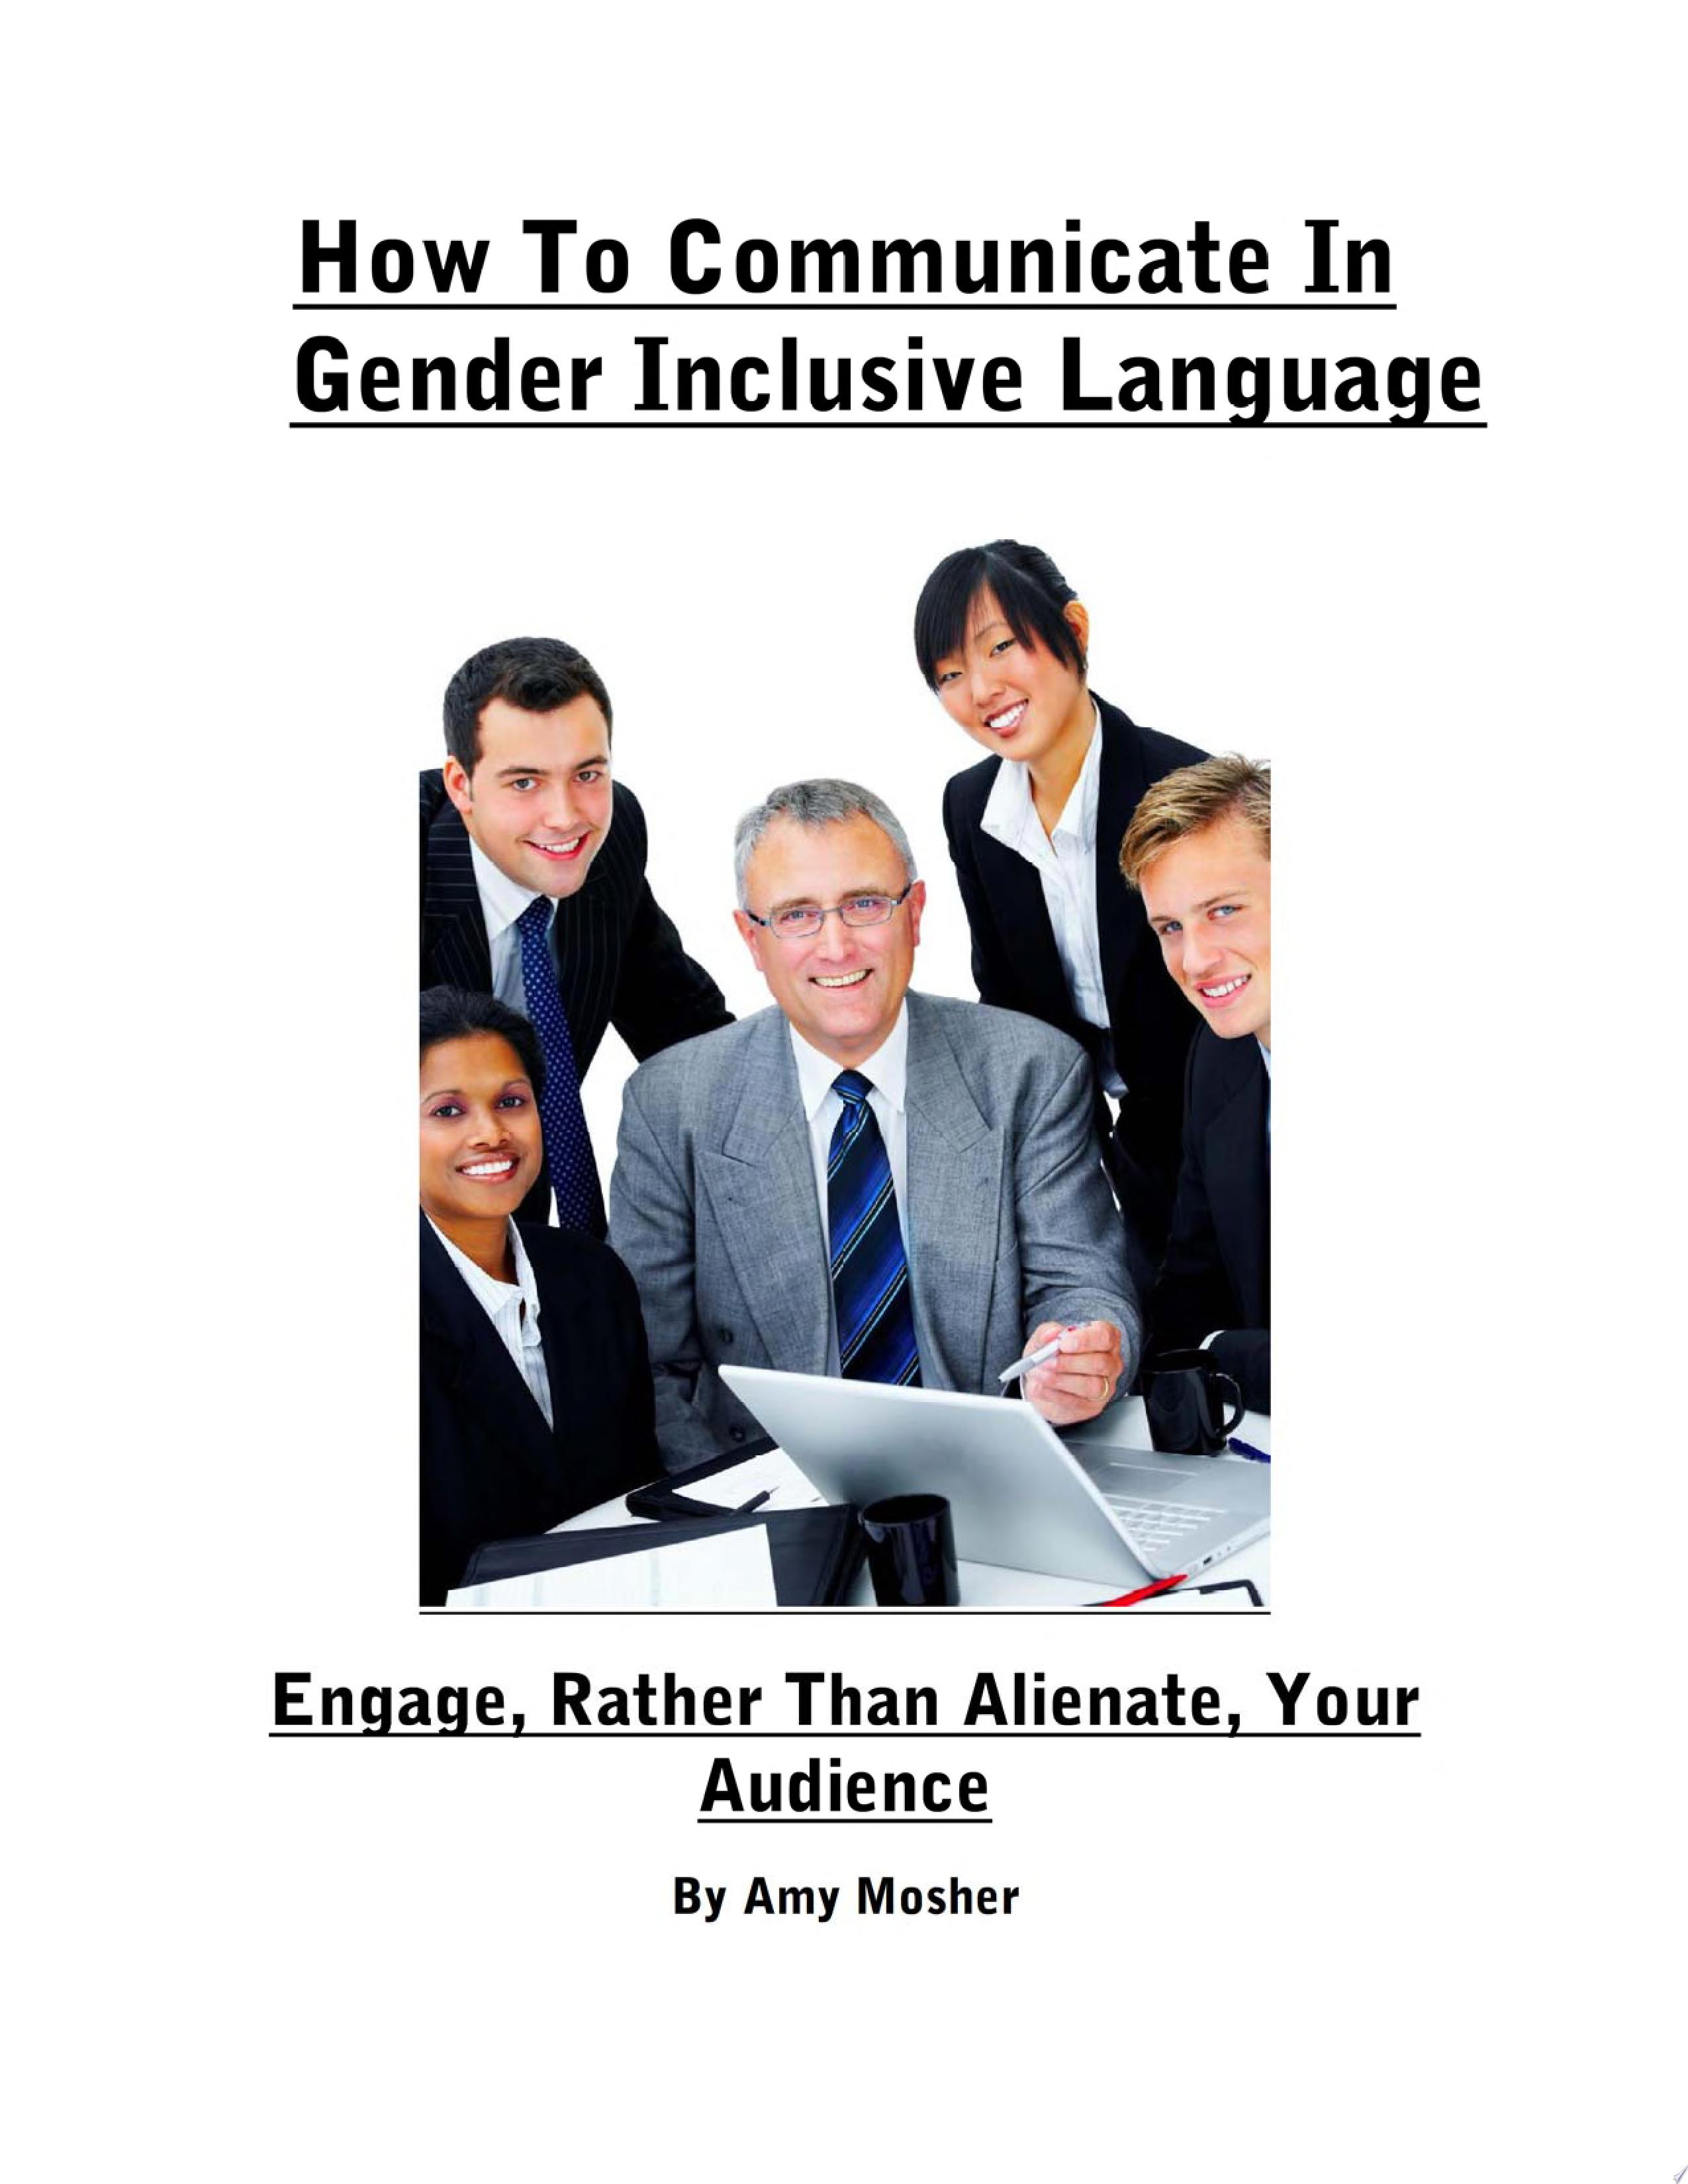 How To Communicate In Gender Inclusive Language